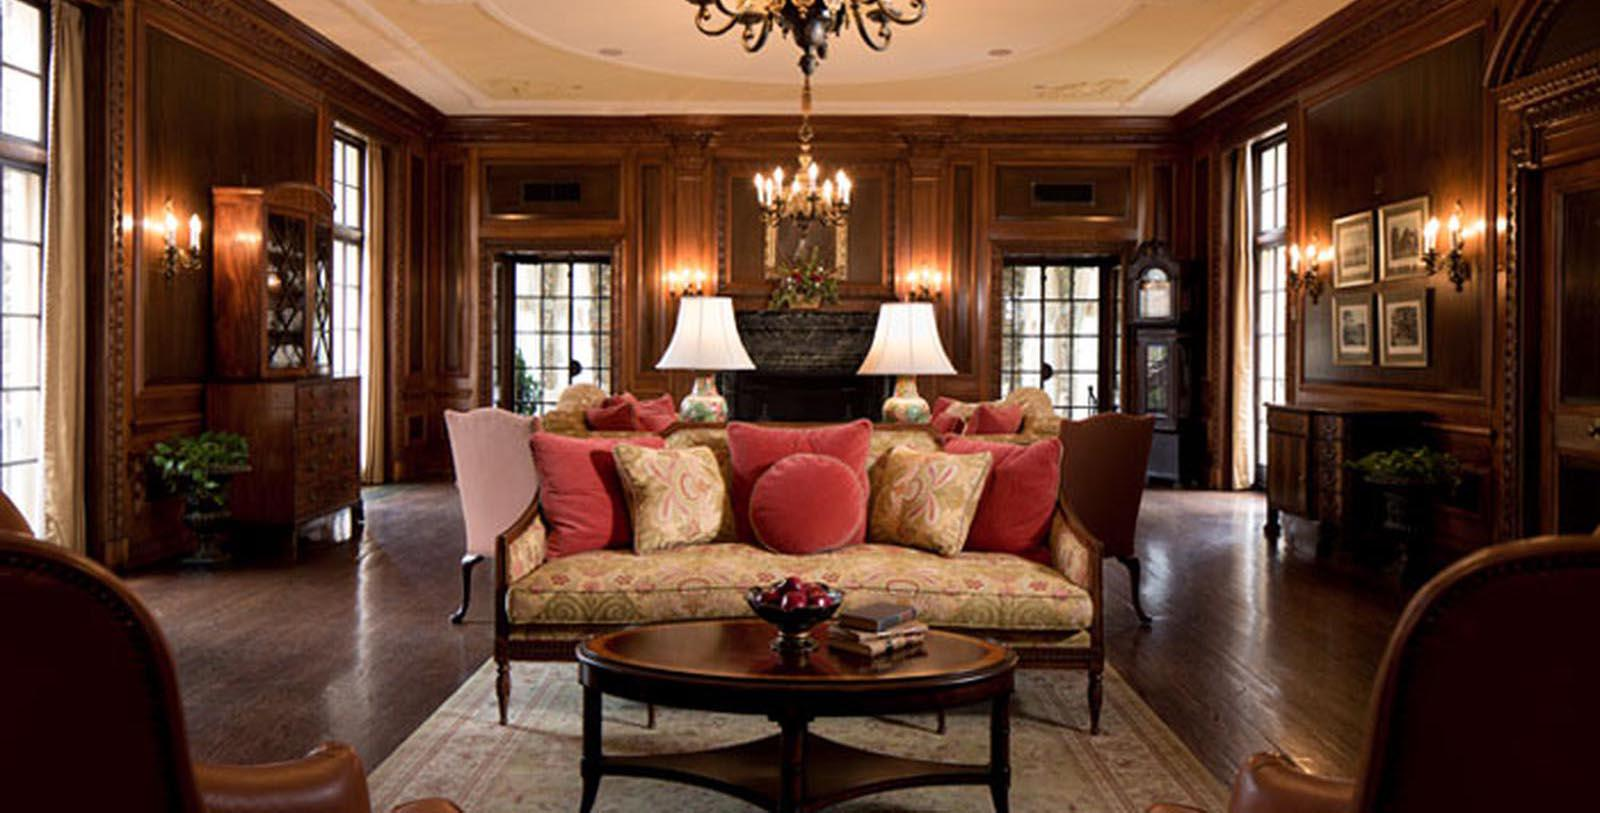 Image of Lounge The Graylyn Estate,1932, Member of Historic Hotels of America, in Winston-Salem, North Carolina, Discover